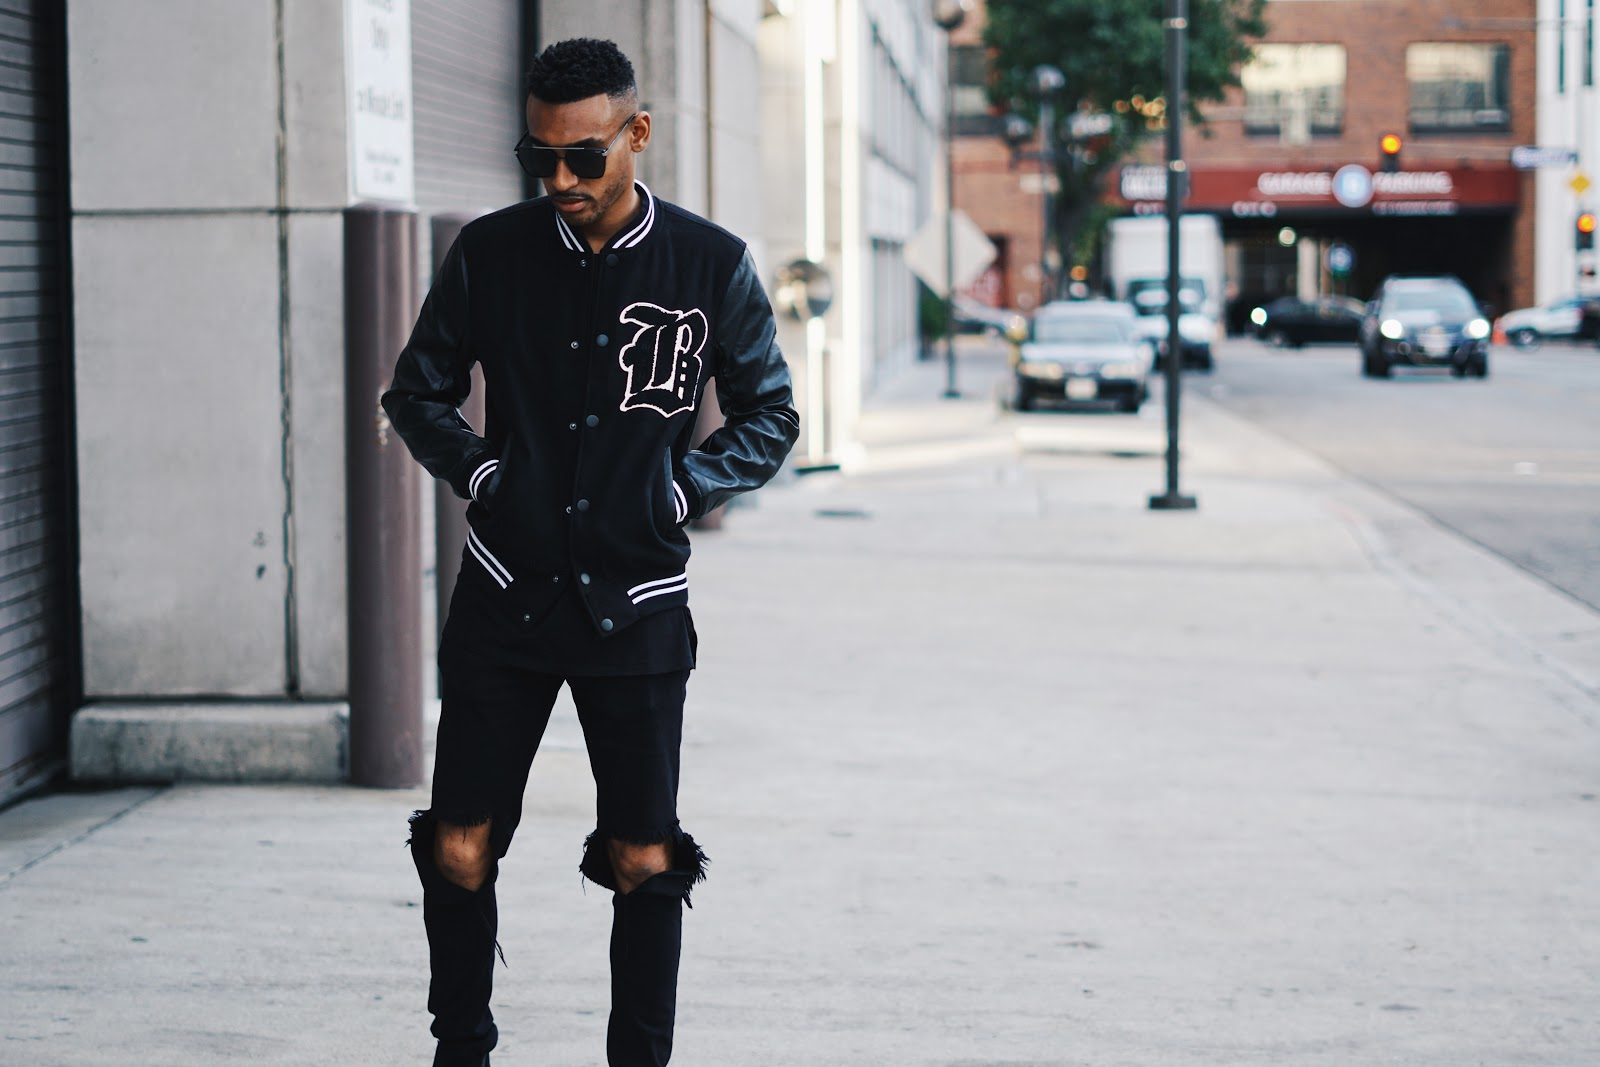 mens varsity jacket mens baseball jacket mens fashion street style mens wear